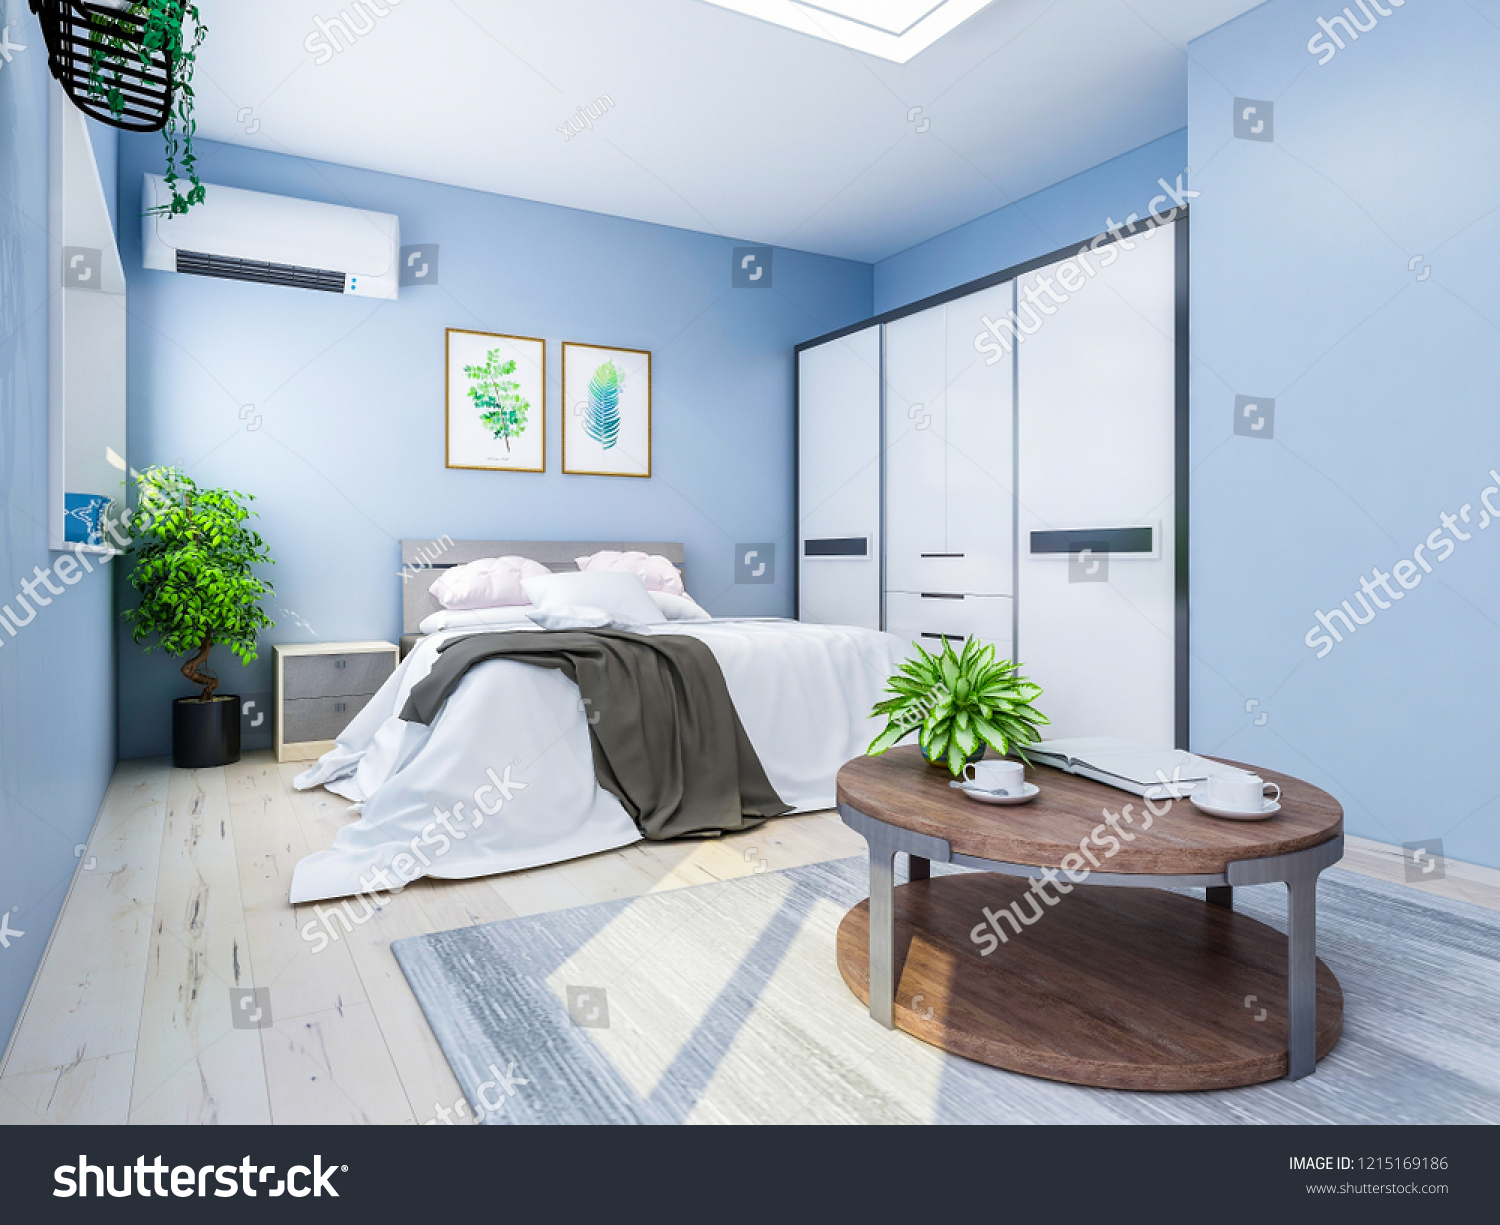 3d rendering light blue bedroom with green plants tv coffee table etc